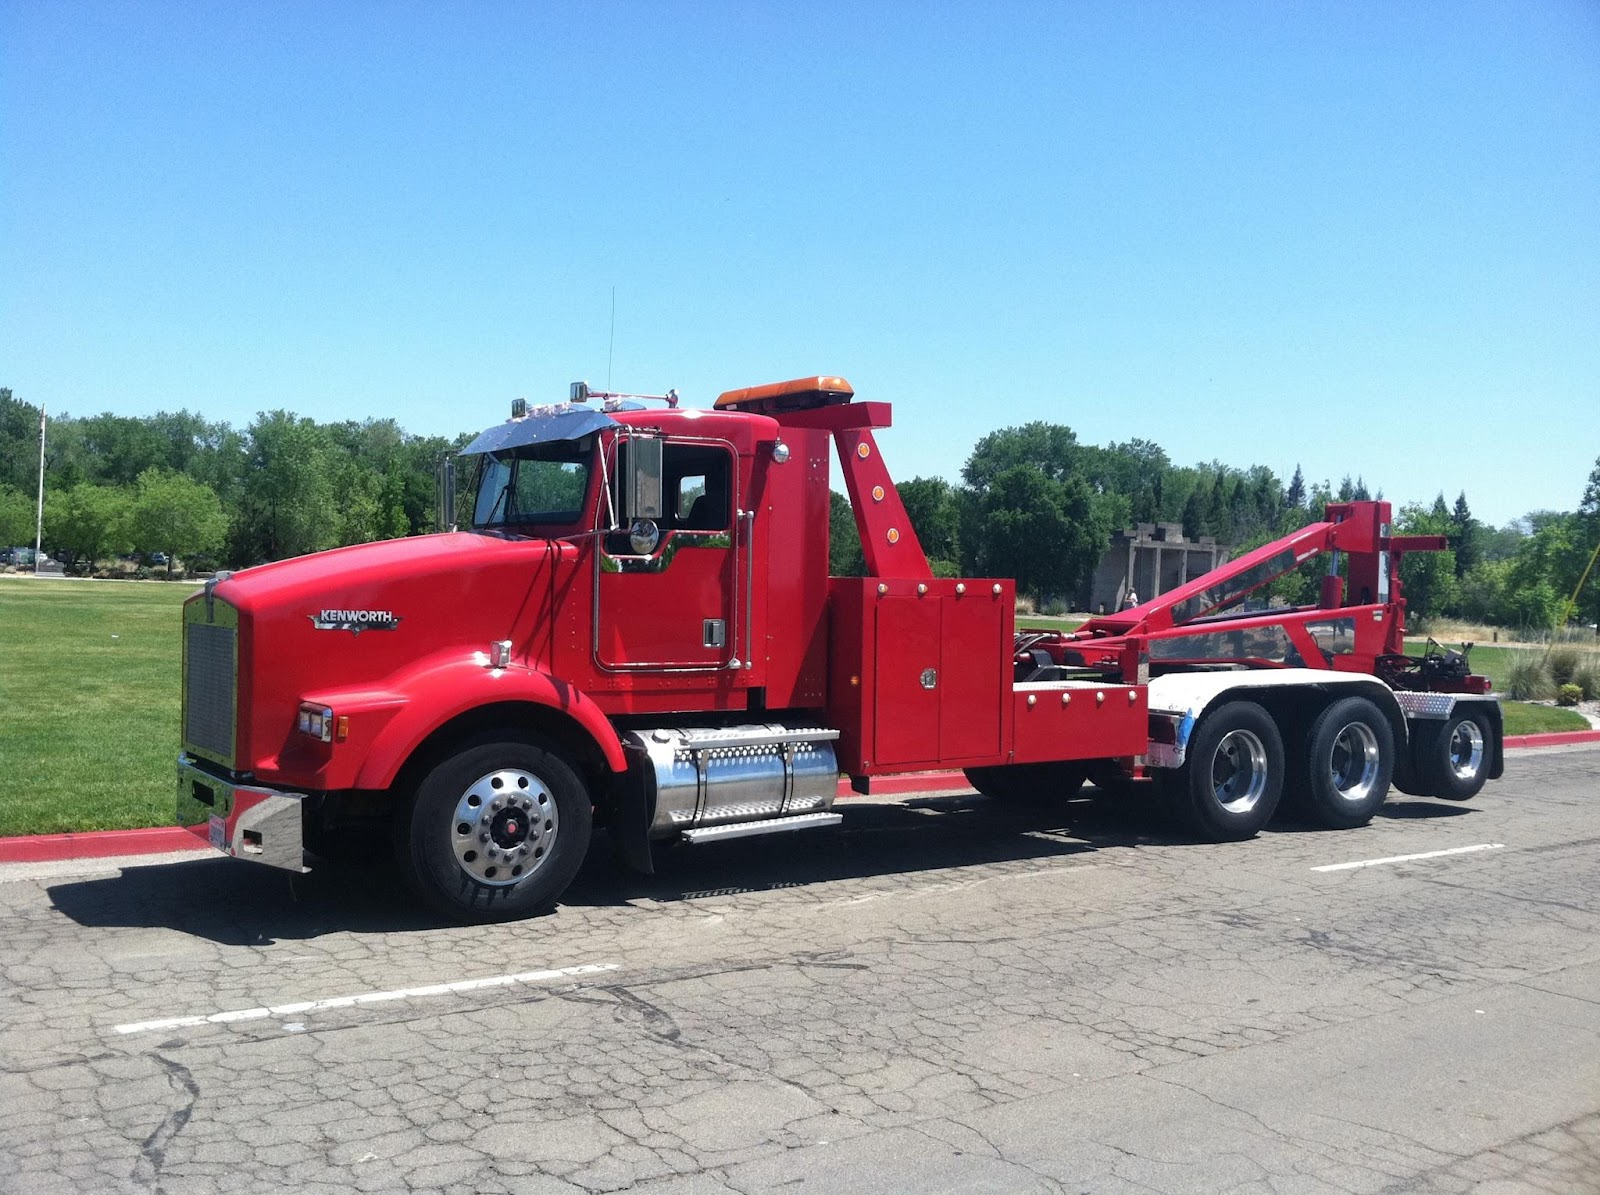 clayton 39 s towing sampson new tow truck. Black Bedroom Furniture Sets. Home Design Ideas